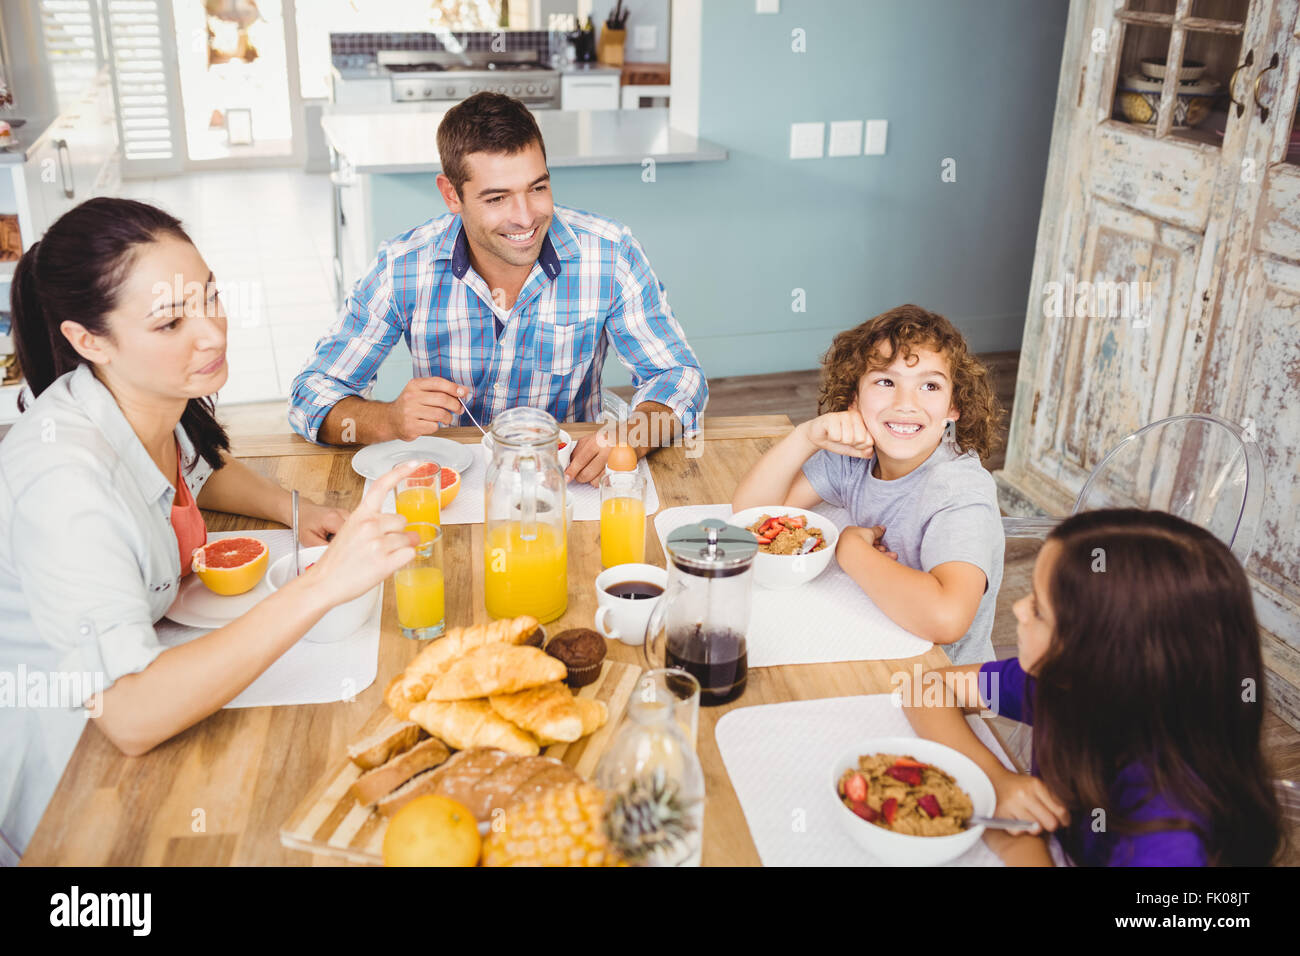 Happy family eating breakfast at table in house - Stock Image